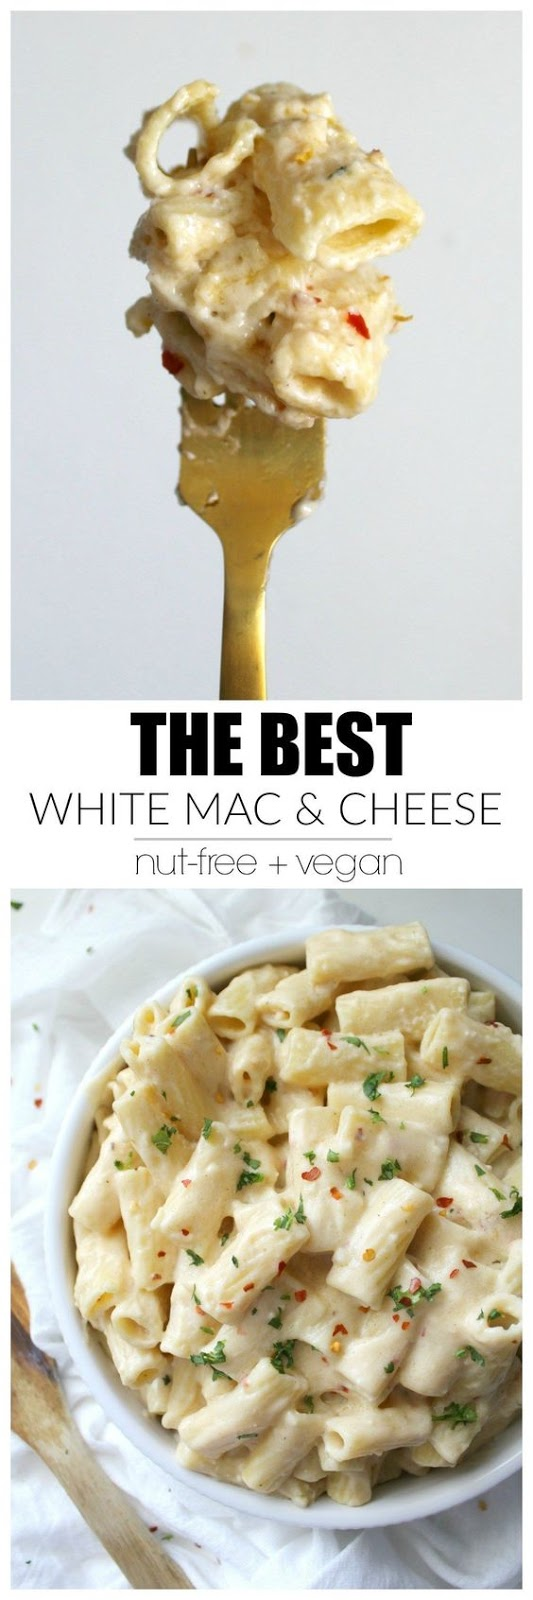 ★★★★☆ 7561 ratings | BEST VEGAN WHITE MAC AND CHEESE #HEALTHYFOOD #EASYRECIPES #DINNER #LAUCH #DELICIOUS #EASY #HOLIDAYS #RECIPE #BEST #VEGAN #WHITE #MAC #CHEESE